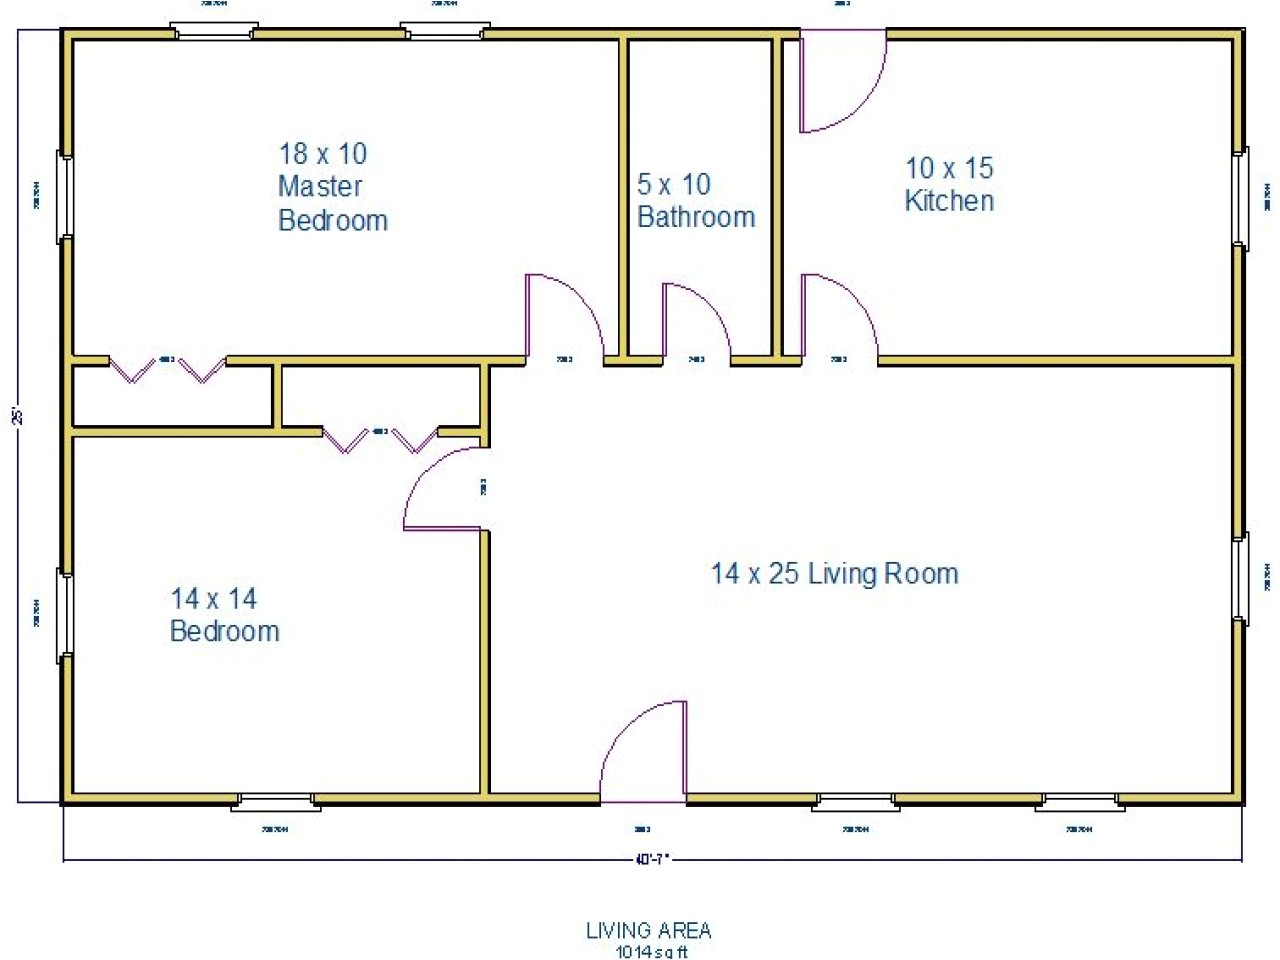 1000 Square Foot Home Floor Plans 1000 Square Foot House Plans 1500 Square Foot House Small